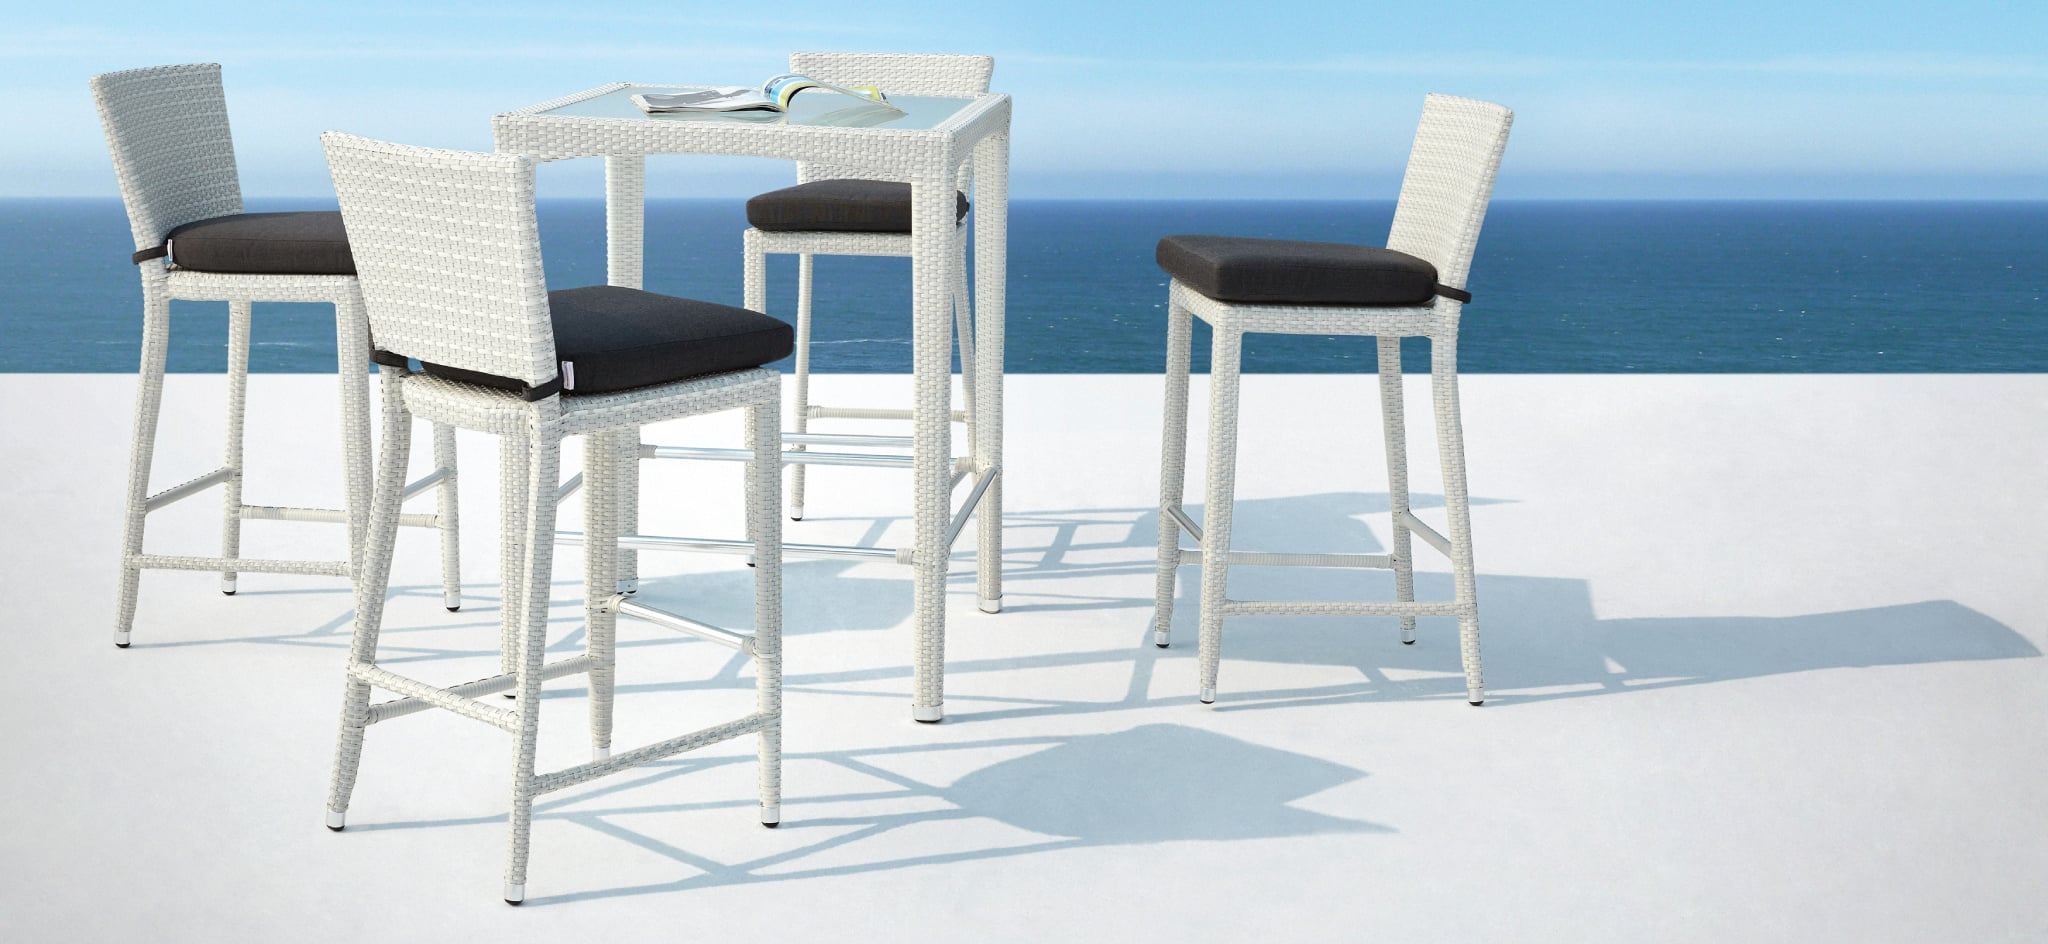 Venice Outdoor Bar Stool Set OceanWeave Furniture NZ : Outdoor Bar Stool Set and Table from www.oceanweavefurniture.co.nz size 2048 x 944 jpeg 184kB